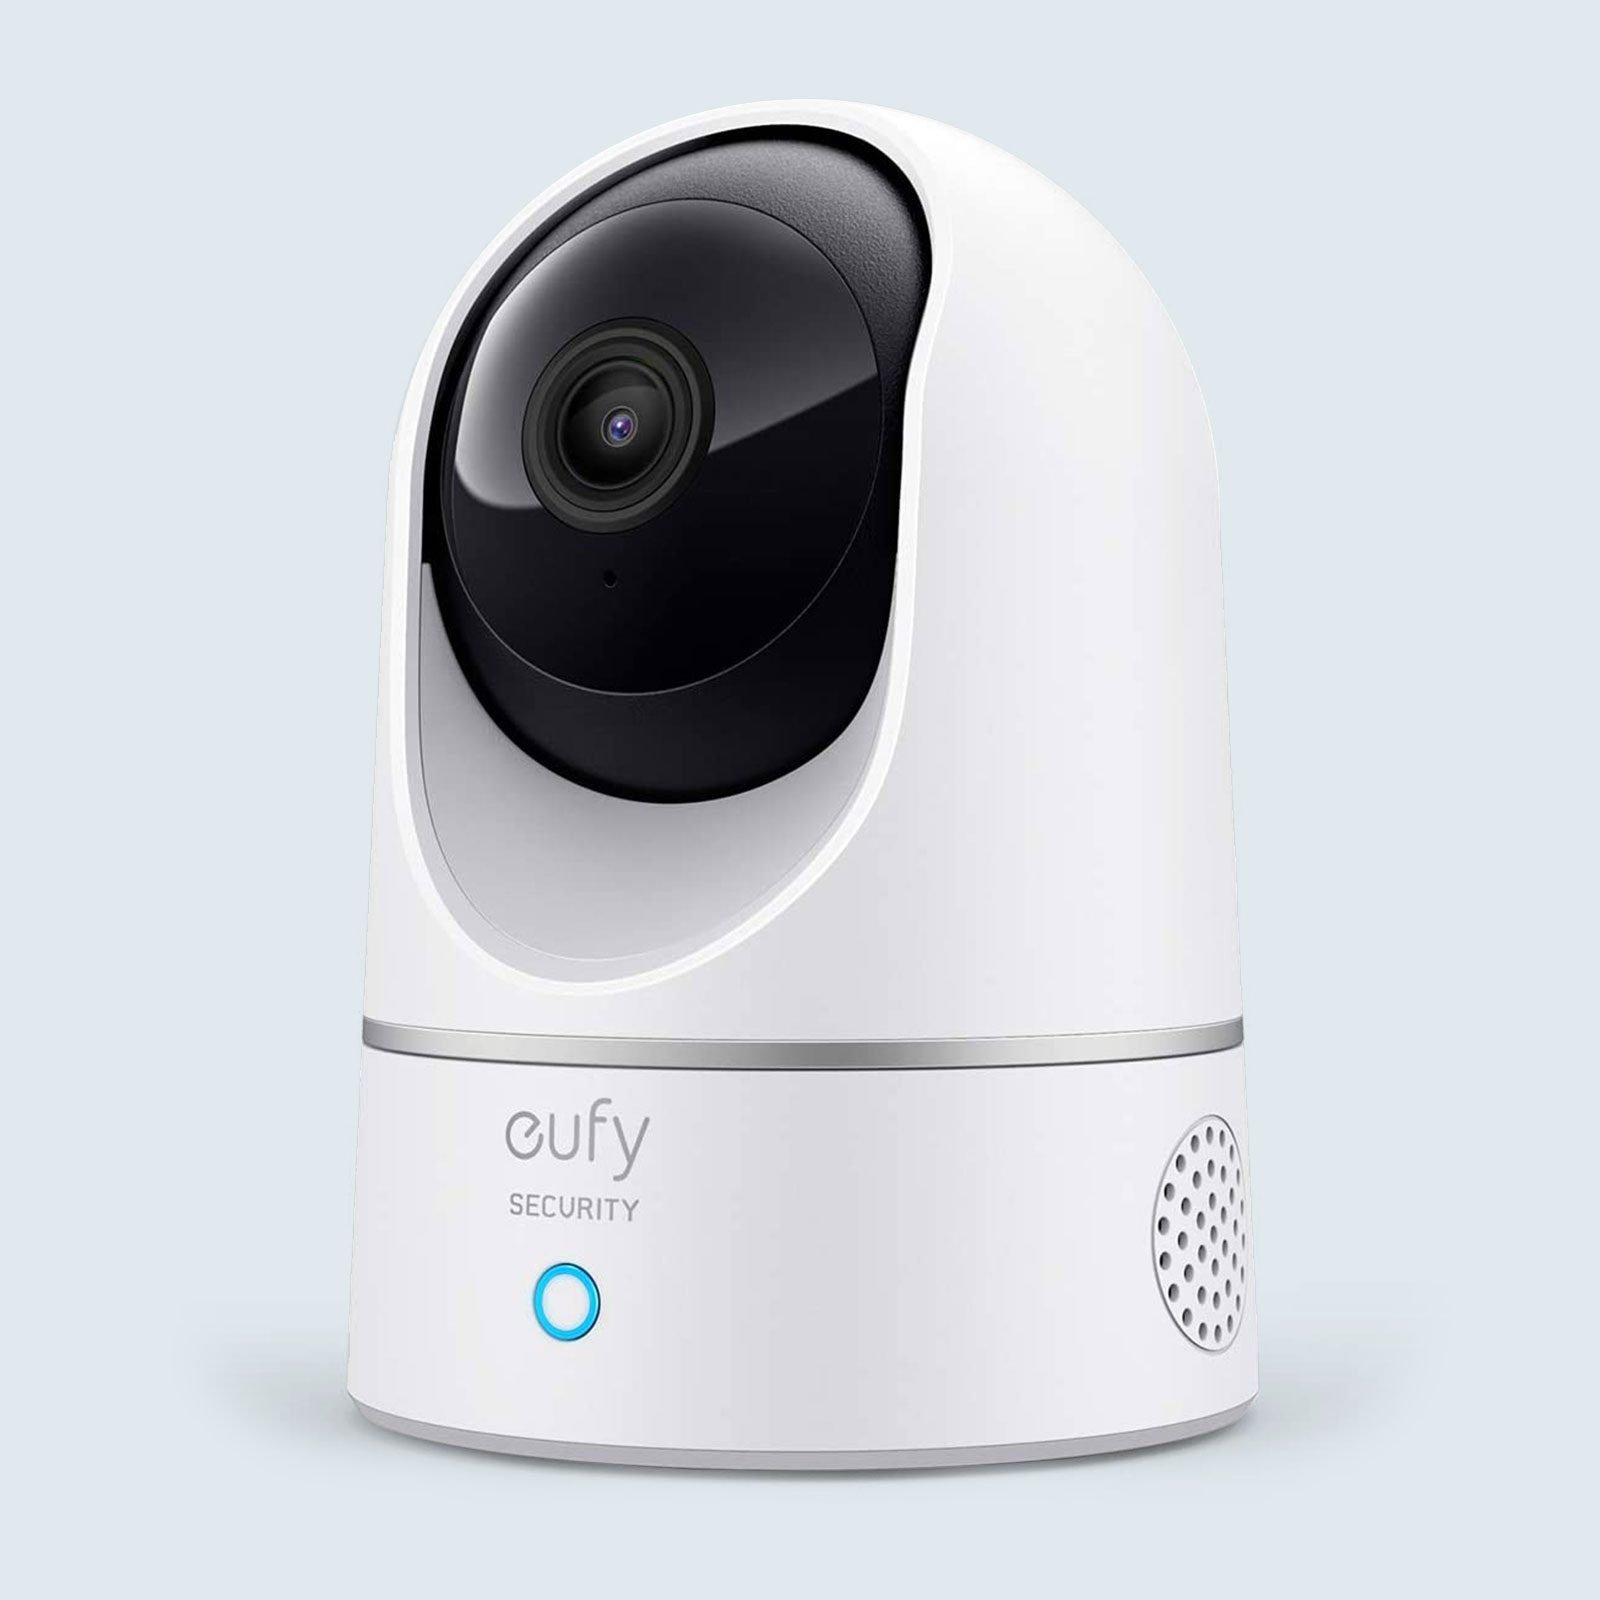 Best pet camera for security: Eufy Security Indoor Camera